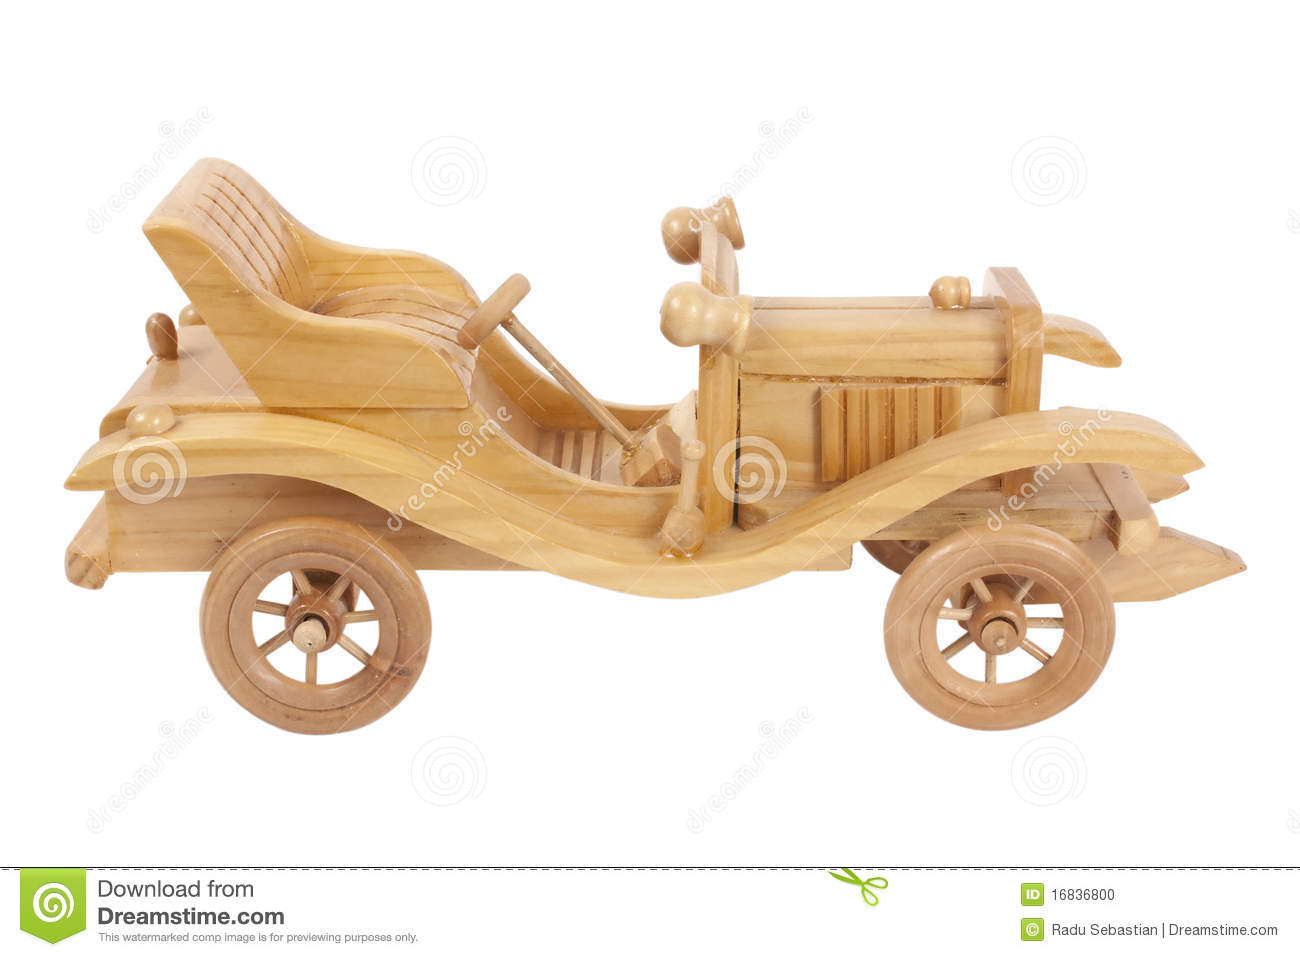 Wooden Toy Car Stock Photo - Image: 16836800